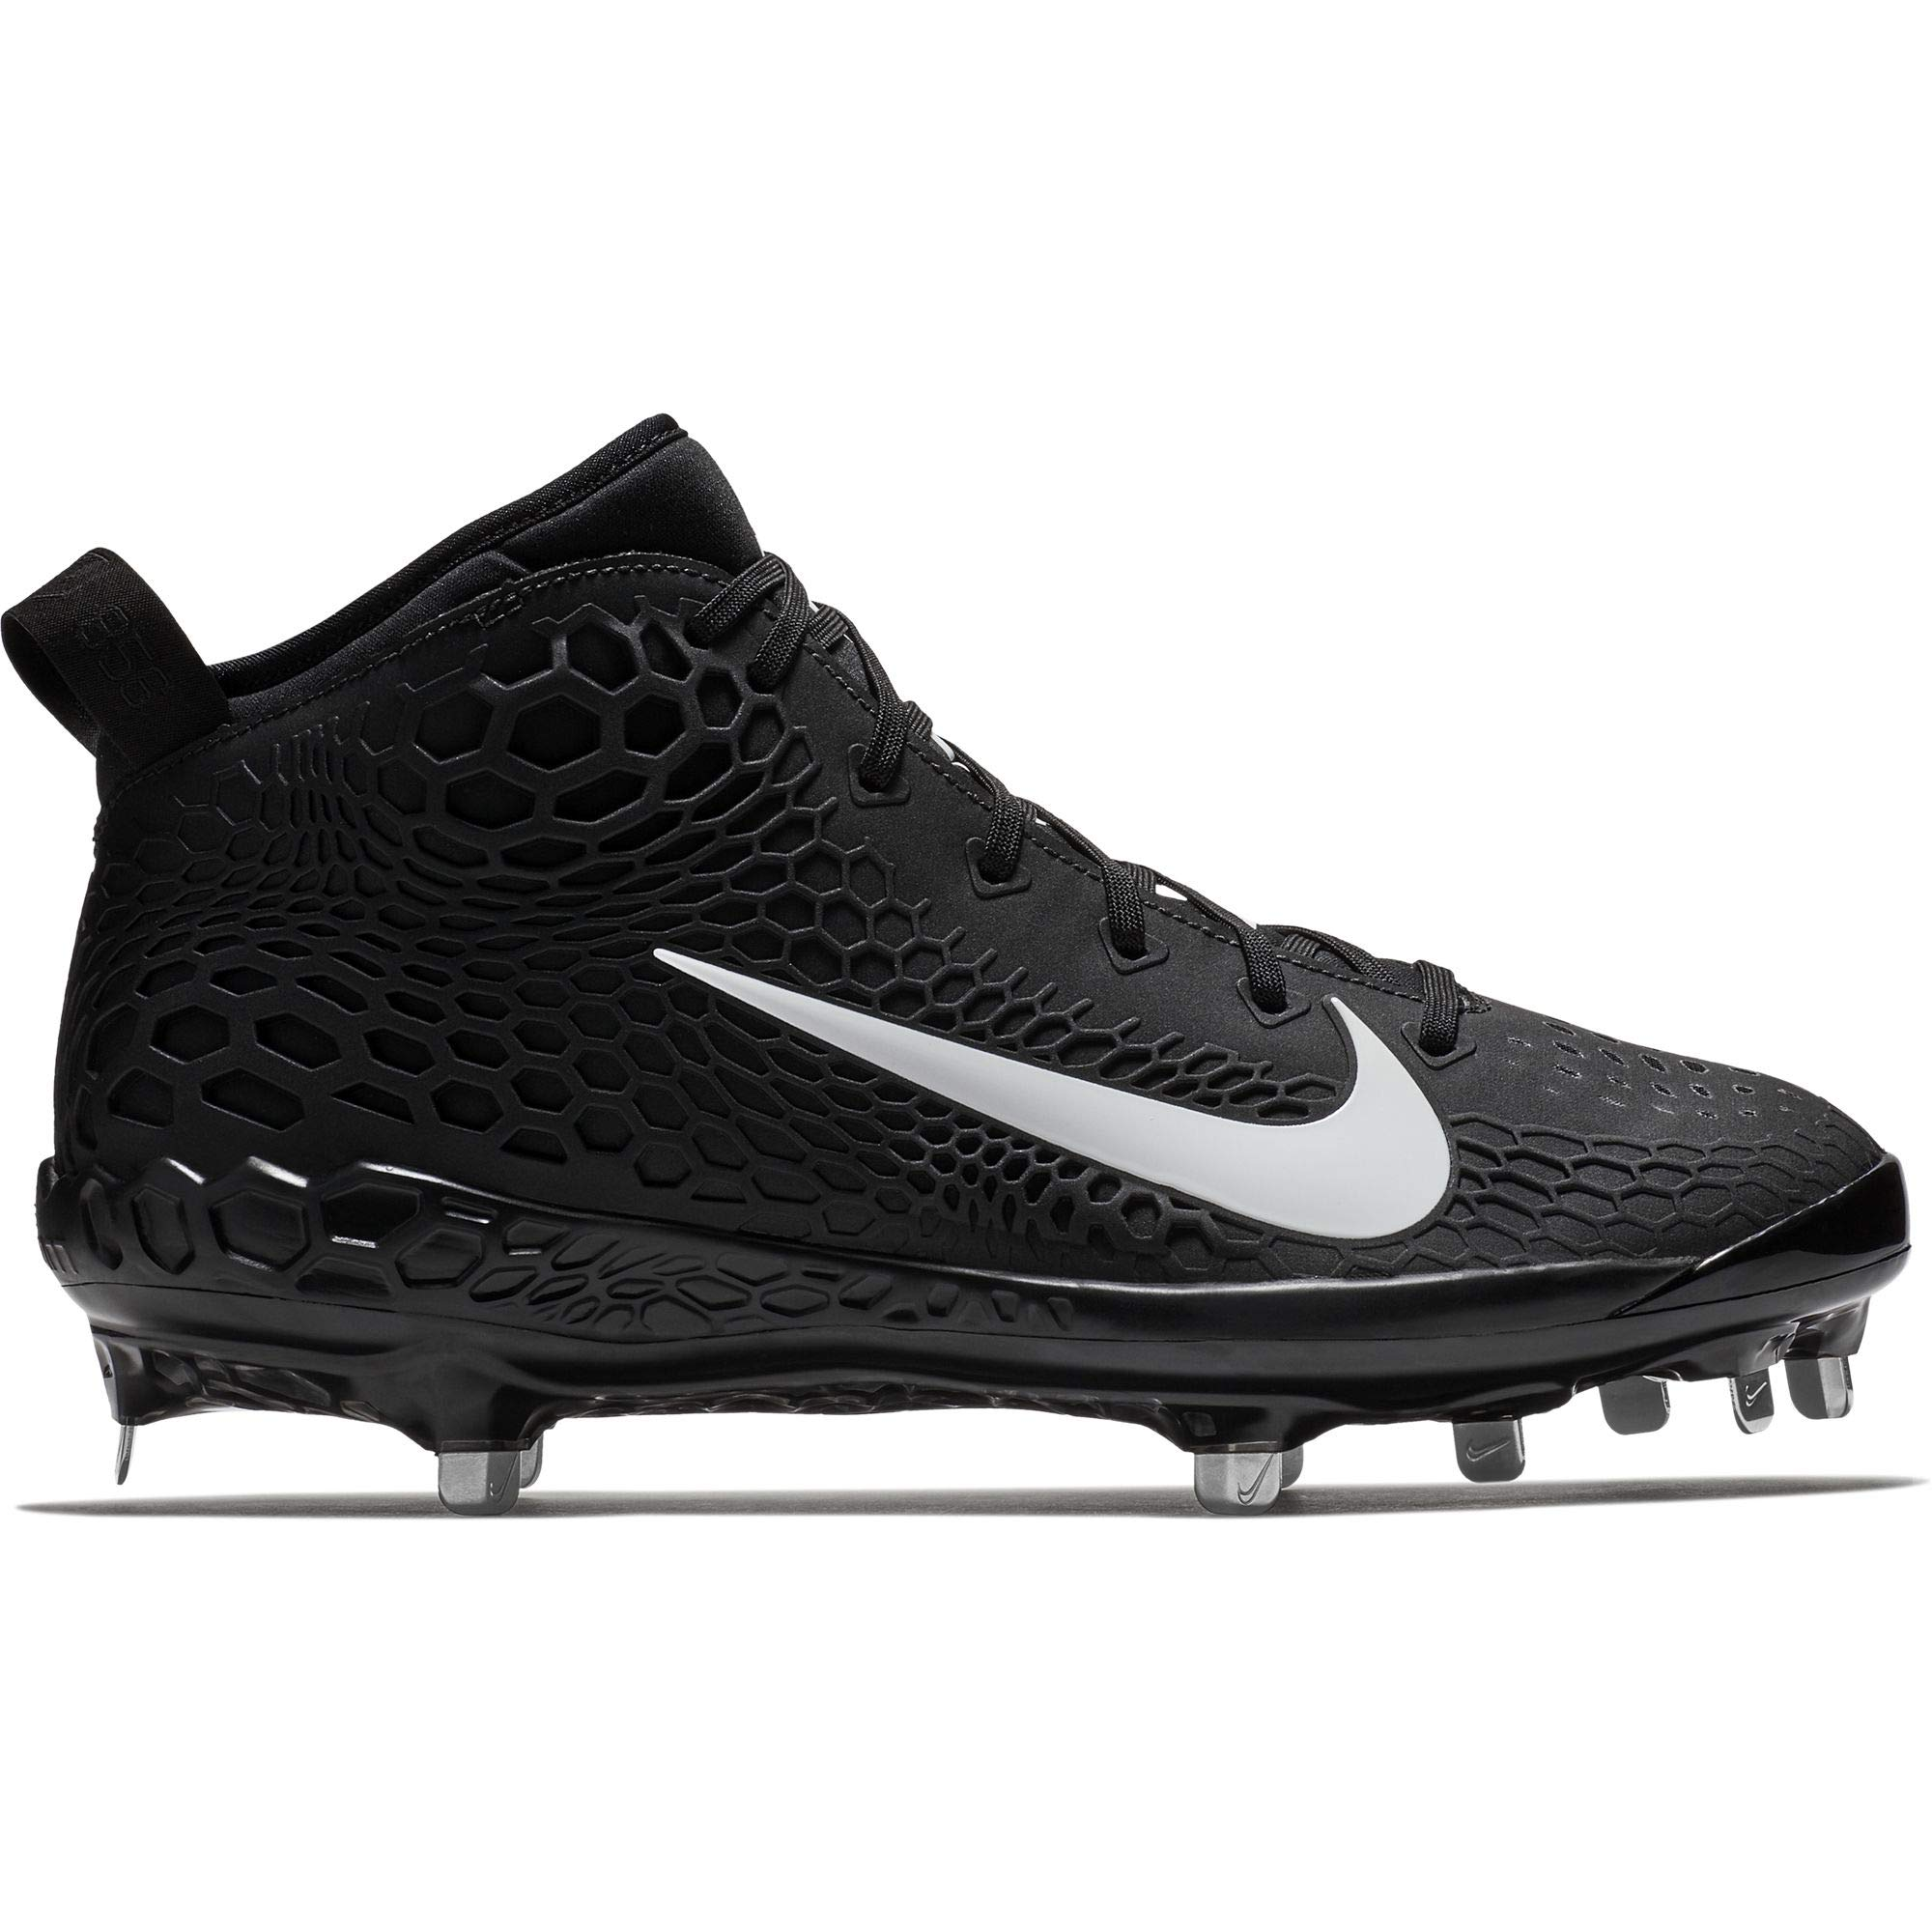 Nike Men's Force Zoom Trout 5 Metal Baseball Cleat Black/White/Oil Grey Size 9.5 M US